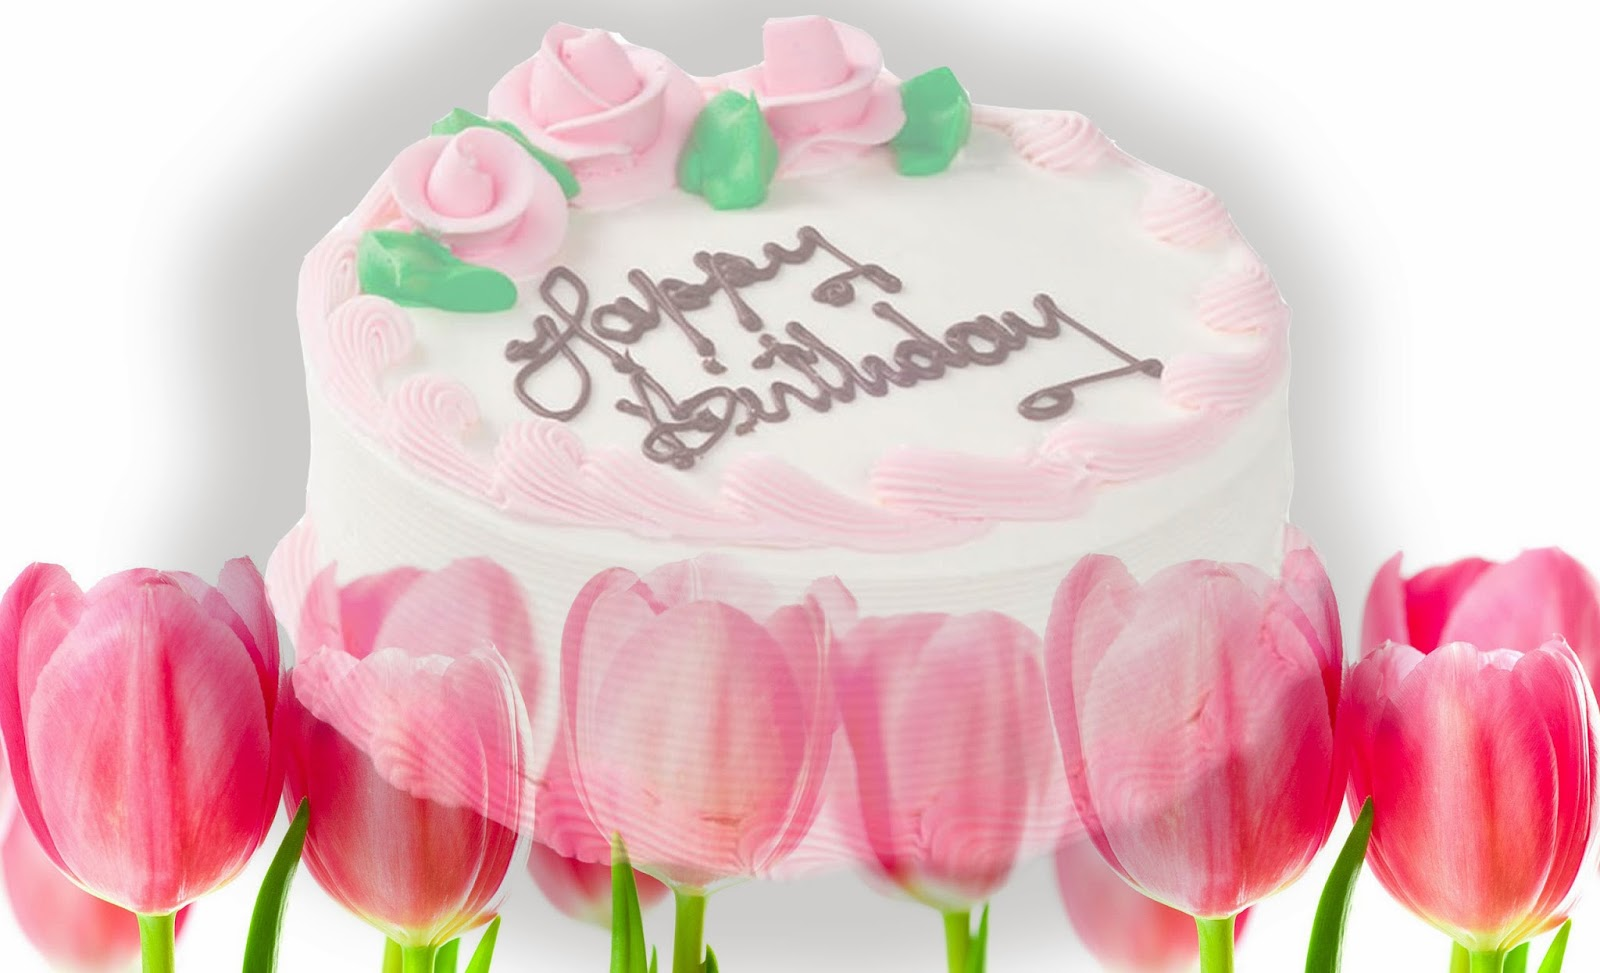 Lovable images happy birthday greetings free download cake happy happy birthday cakes wallpapers free download izmirmasajfo Images